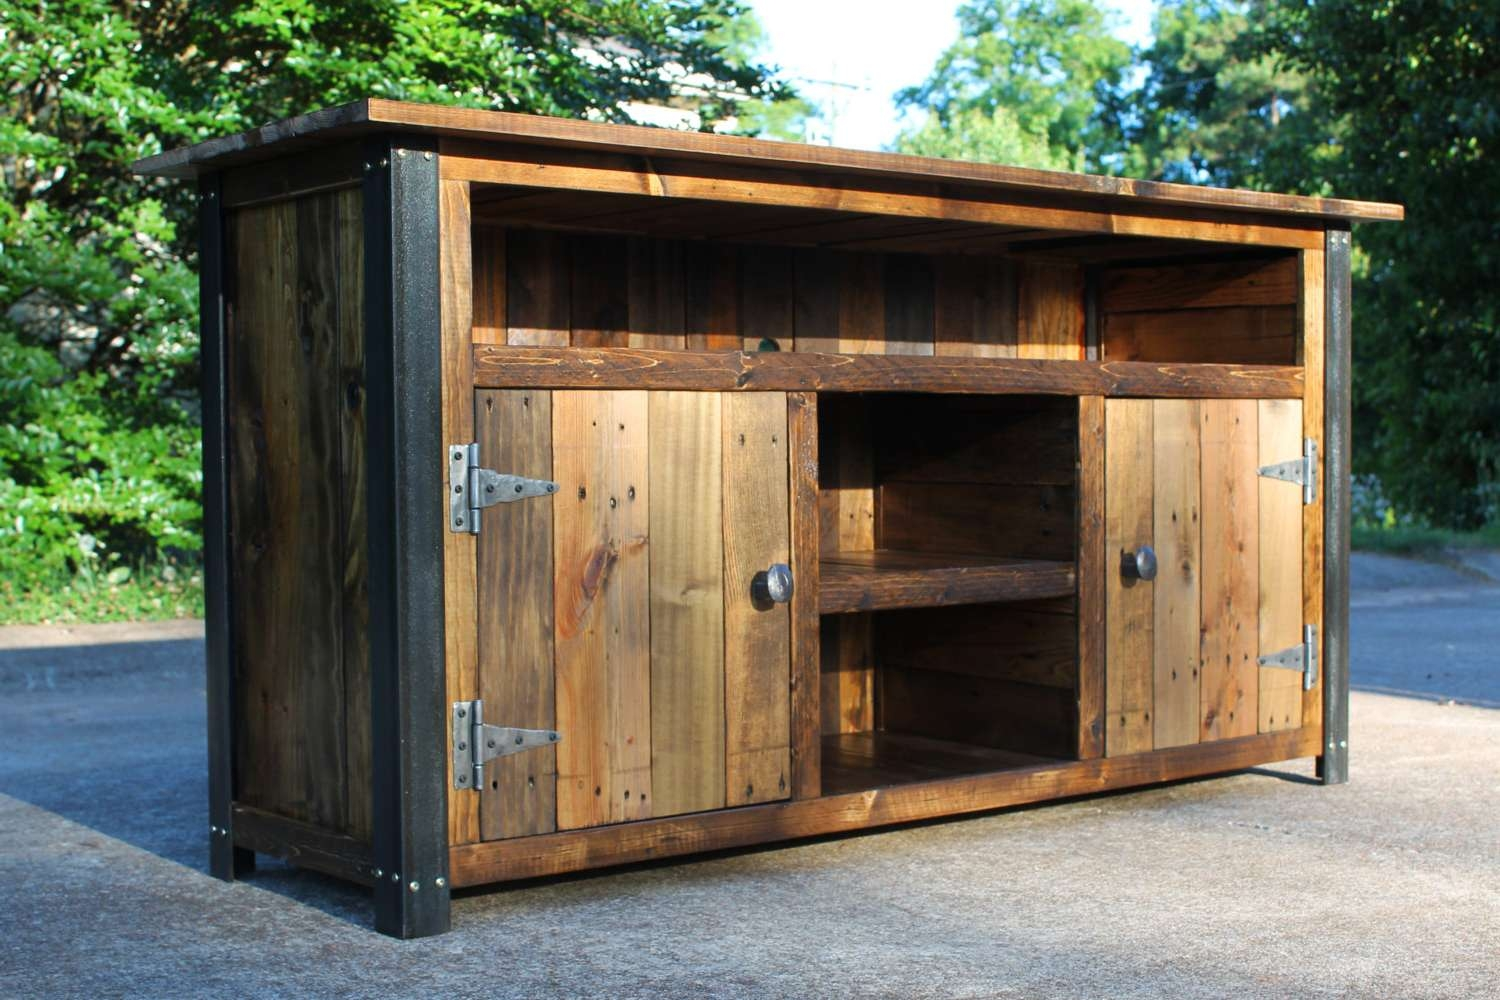 Rustic Tv Stand With Barn Doors : Ideal Rustic Furniture Tv Stand Intended For Rustic Furniture Tv Stands (View 2 of 20)